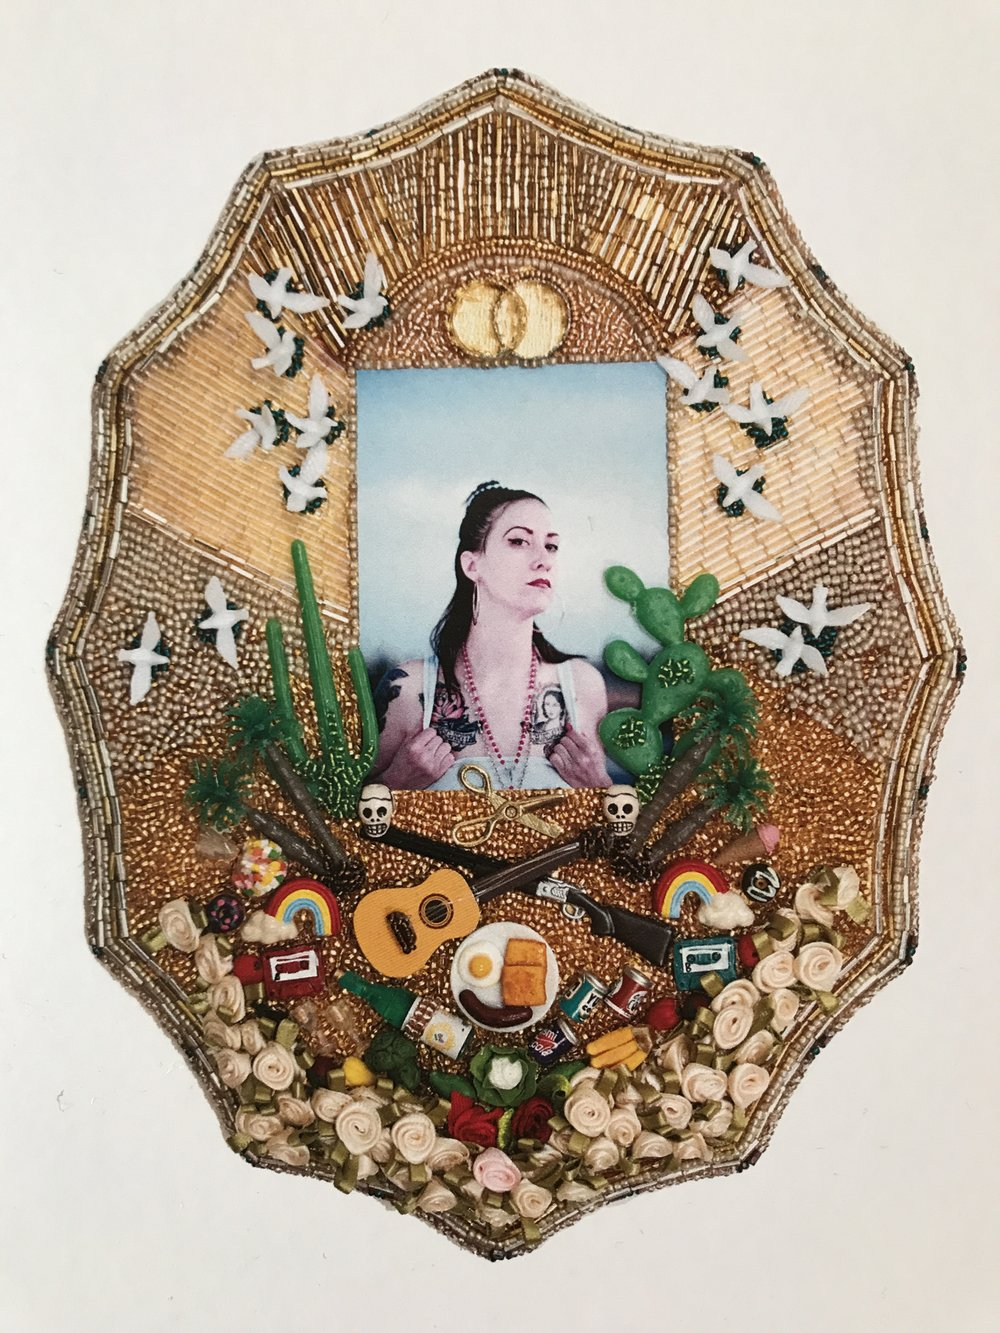 Chingona AKA Libby - Multimedia assemblage (photograph, beads, miniatures), 2017